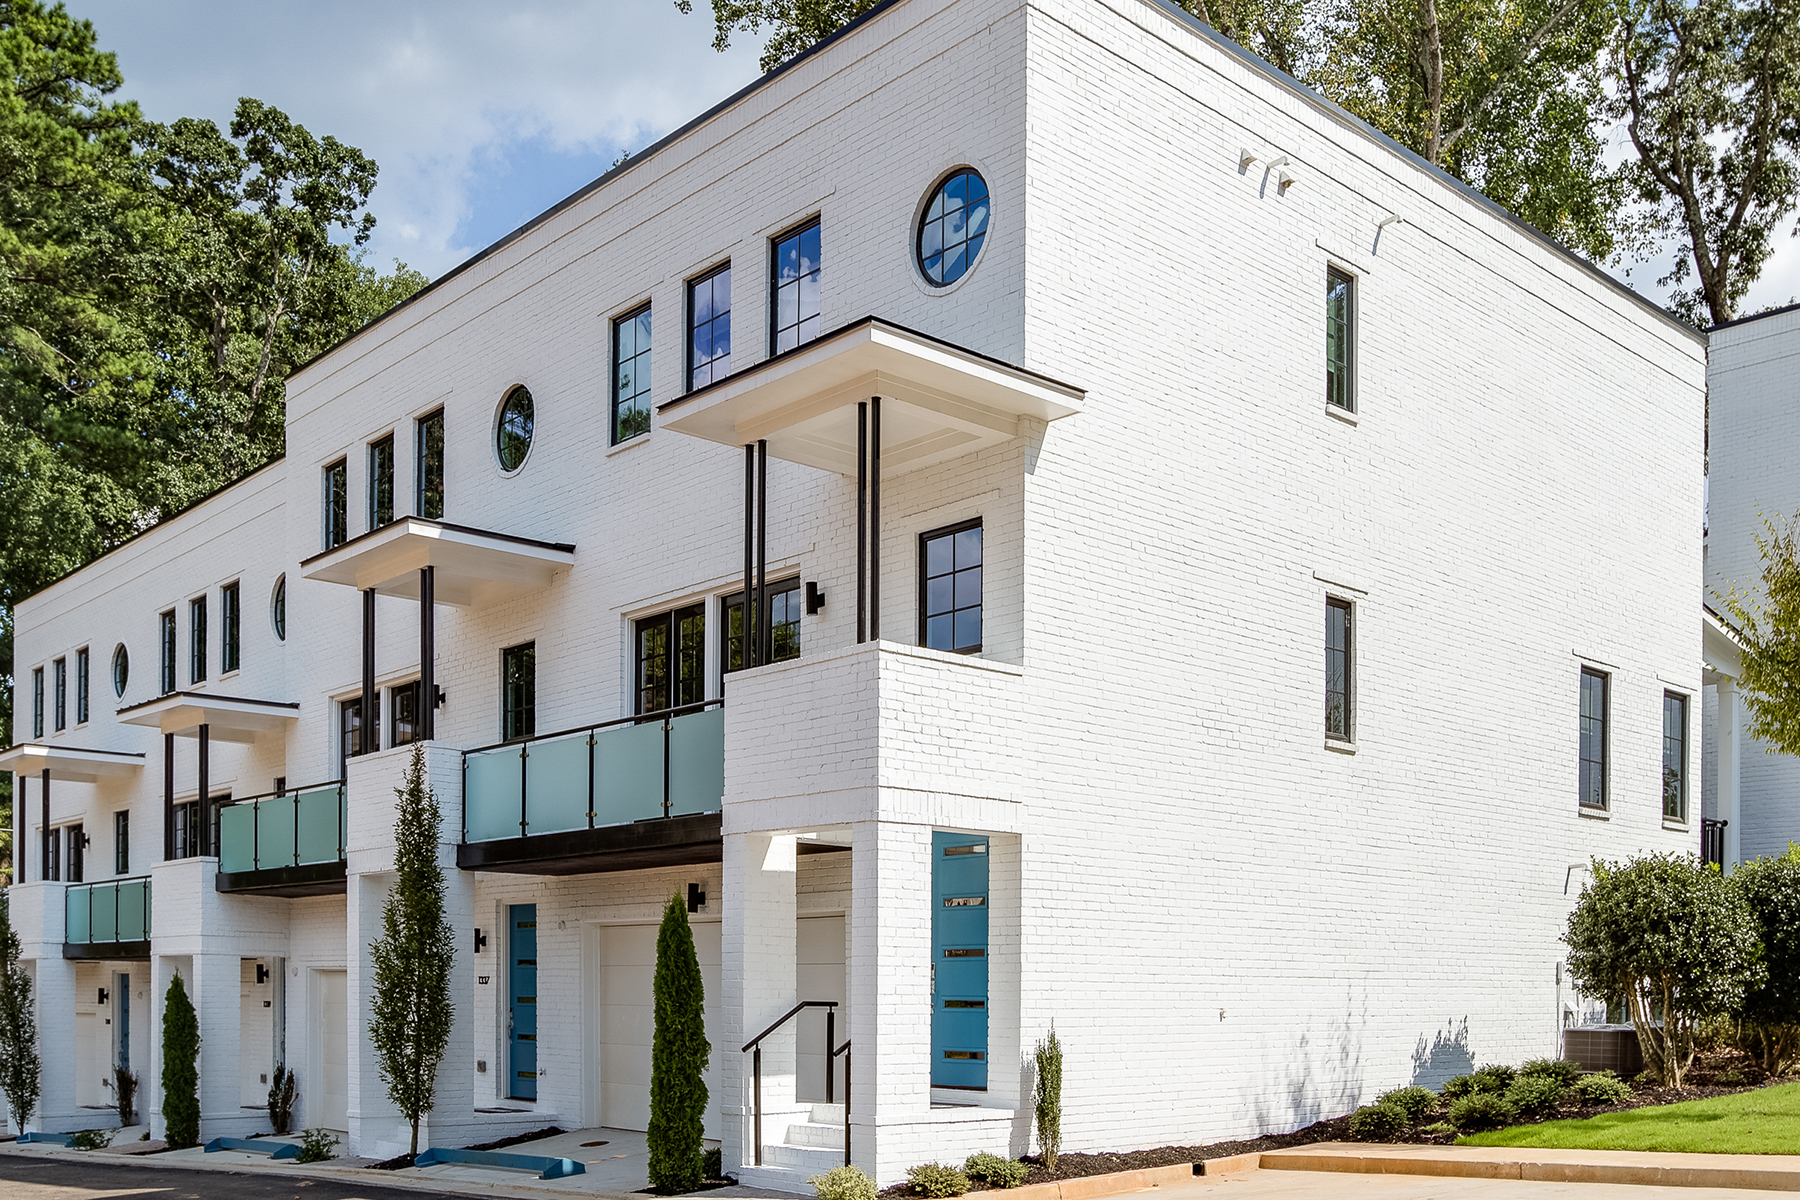 Condominium for Sale at Stunning Condo Flat in Druid Hills 1494 Red Fox Dr A Atlanta, Georgia 30306 United States